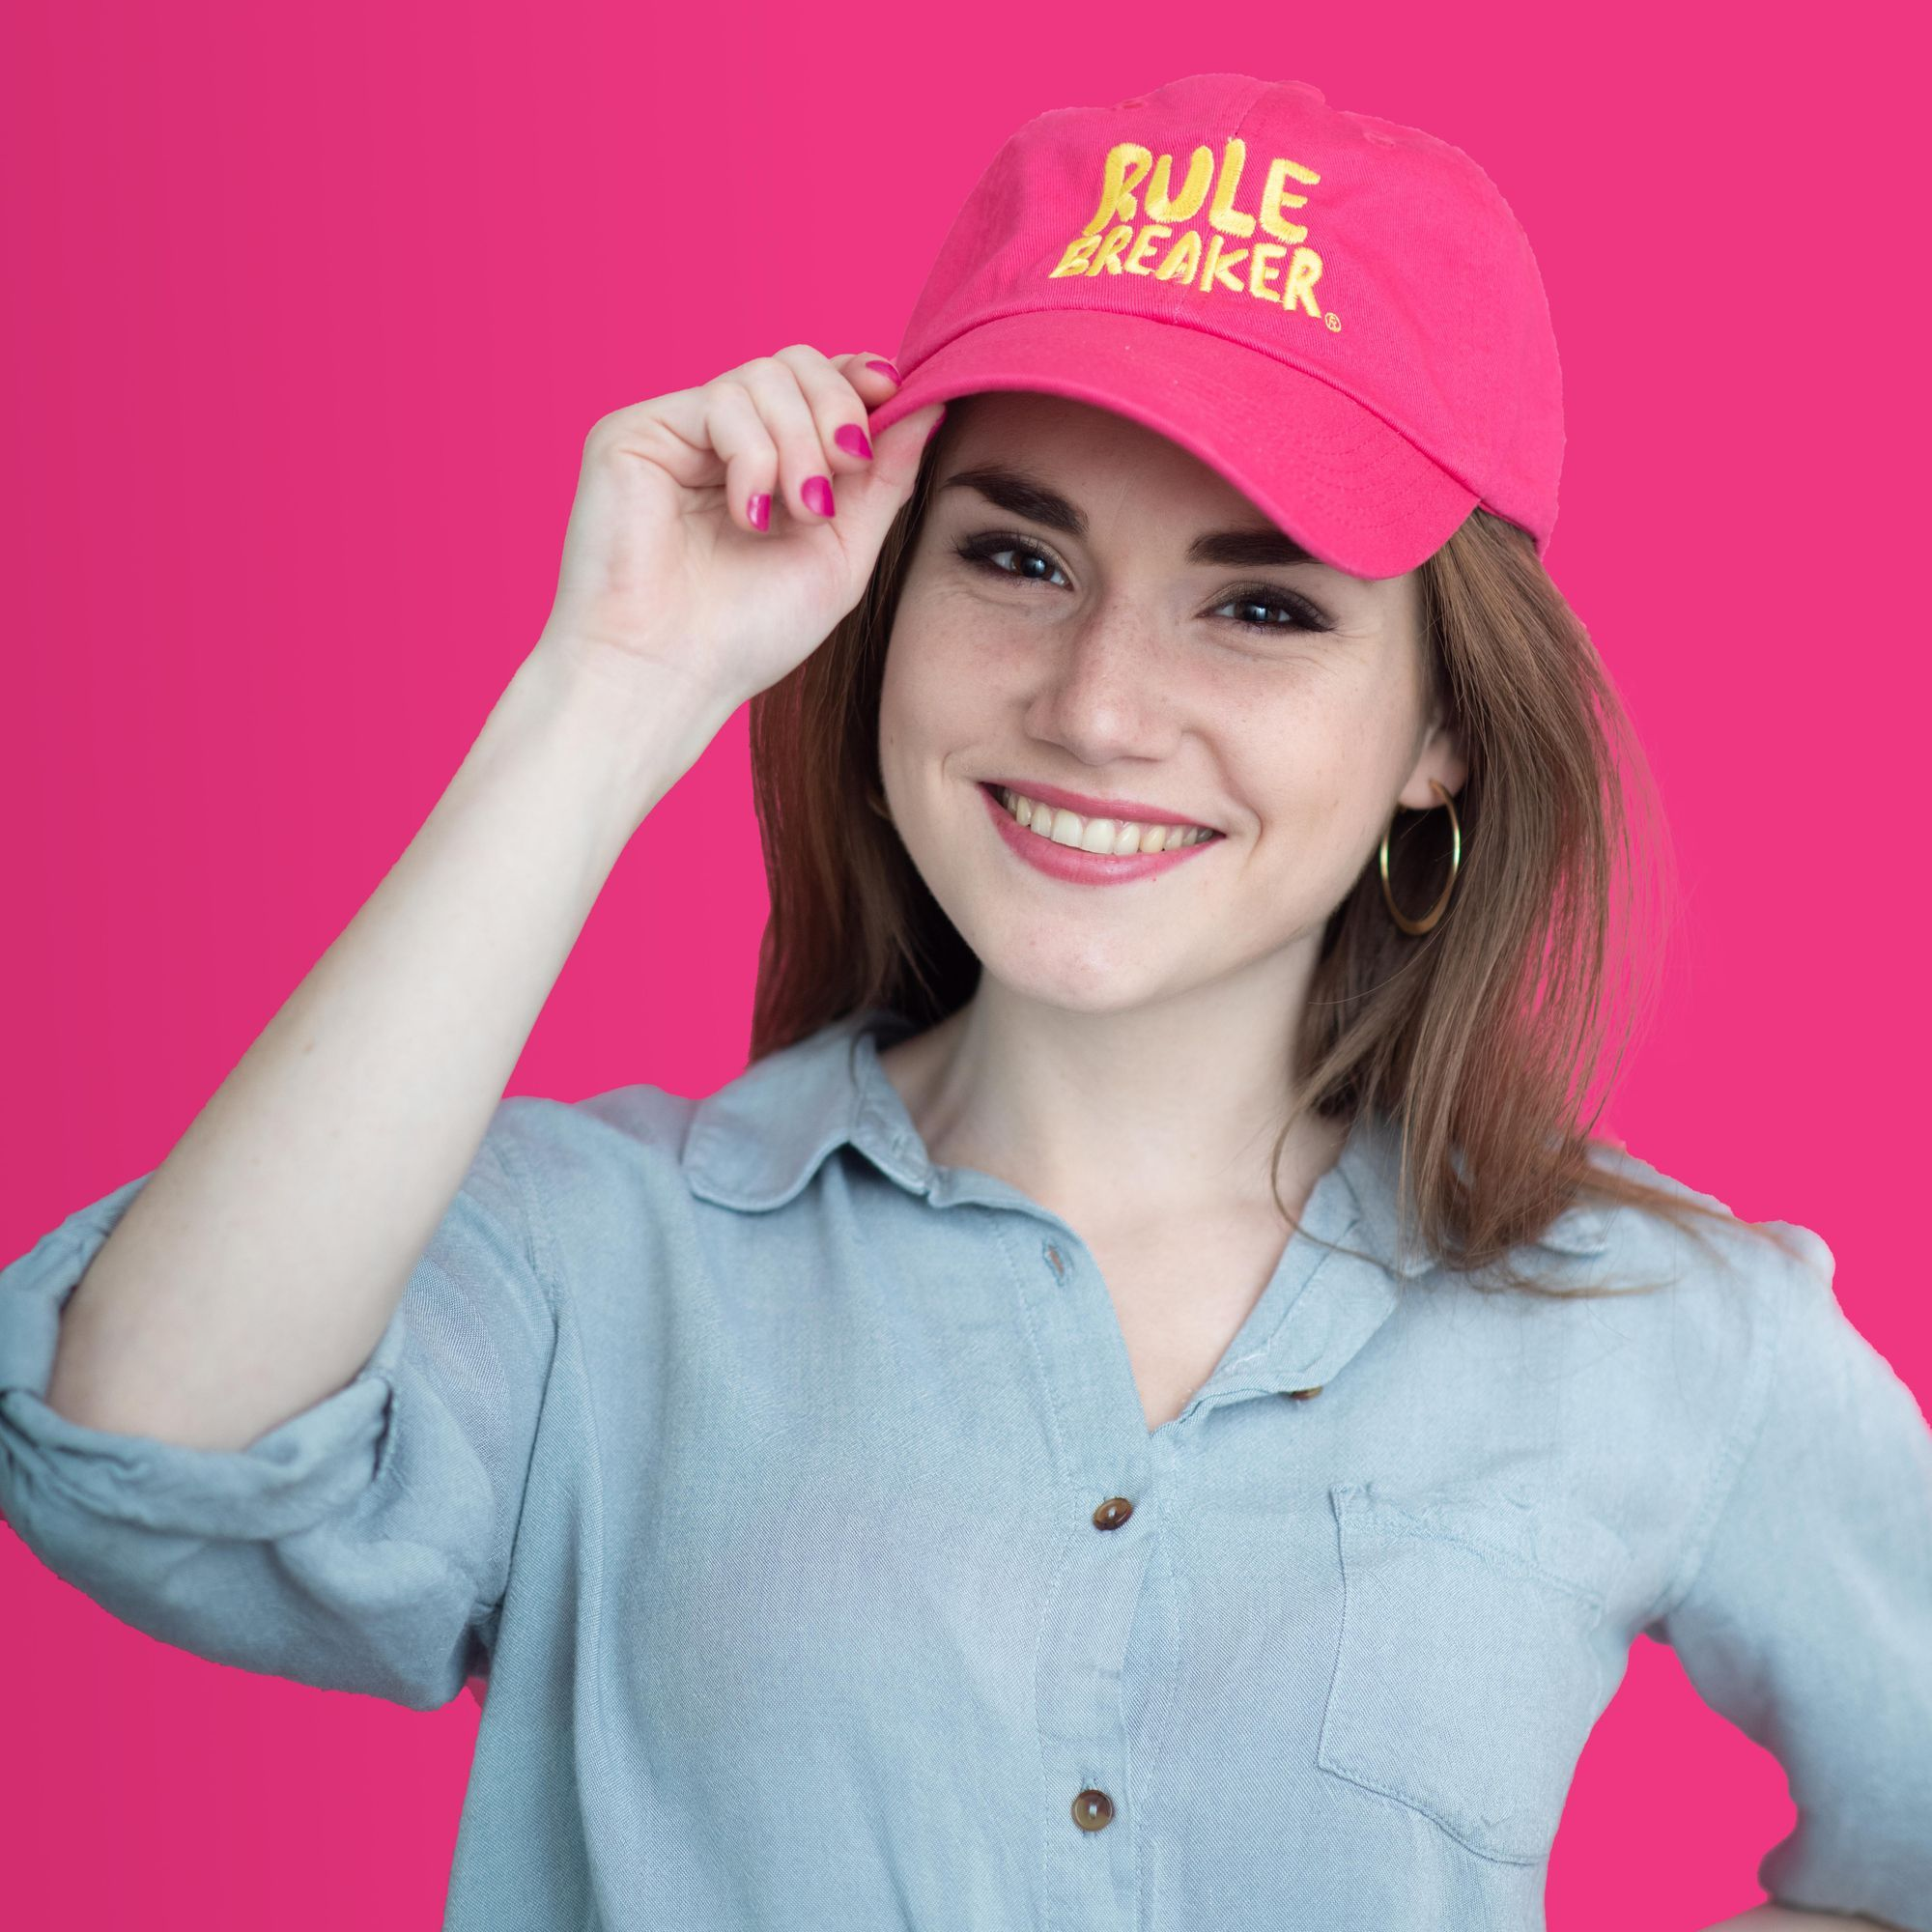 We bet you'd like to get your hands on one of these cute hats! bet you'd like to get your hands on one of these cute hats!